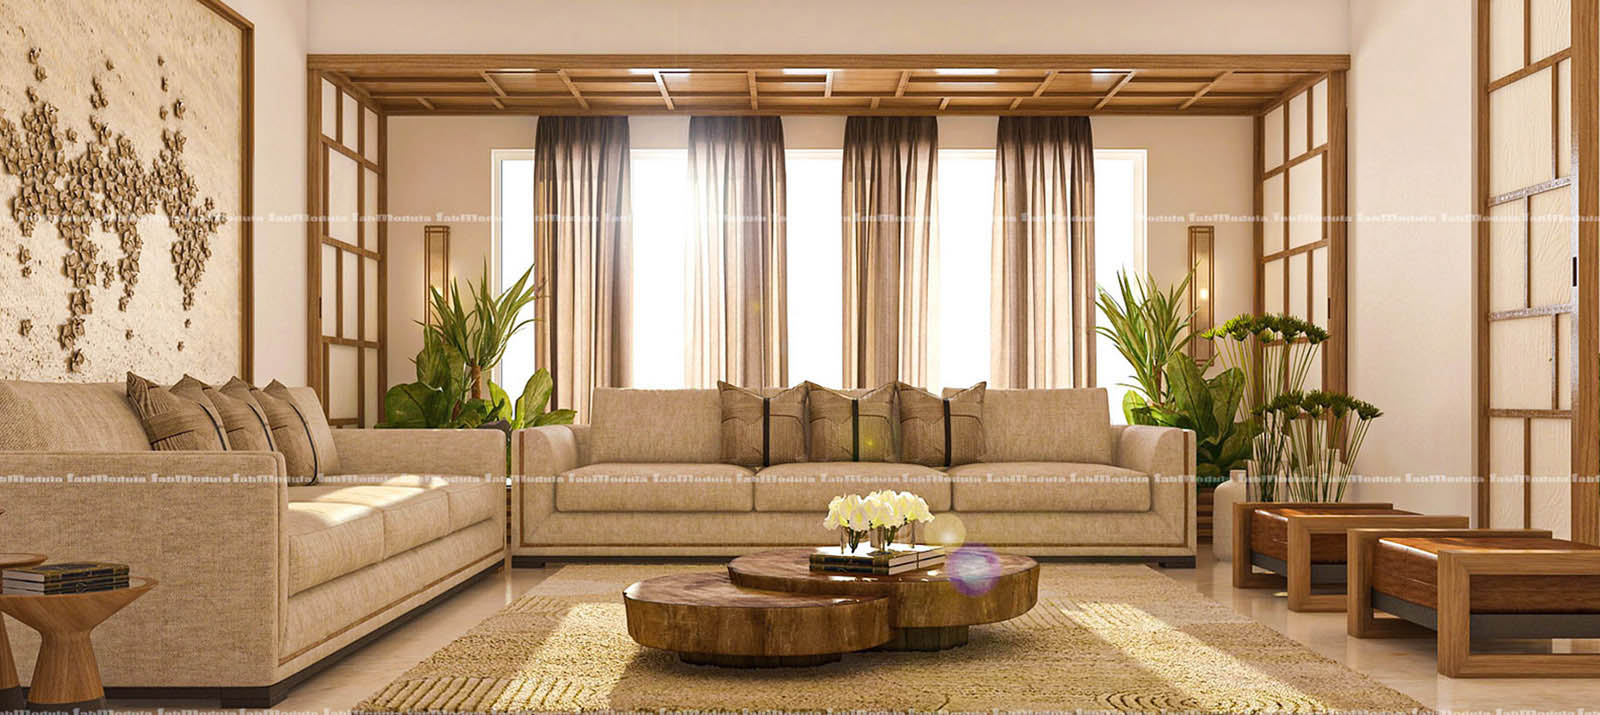 Fabmodula interior designers bangalore best interior design for Famous interior designs